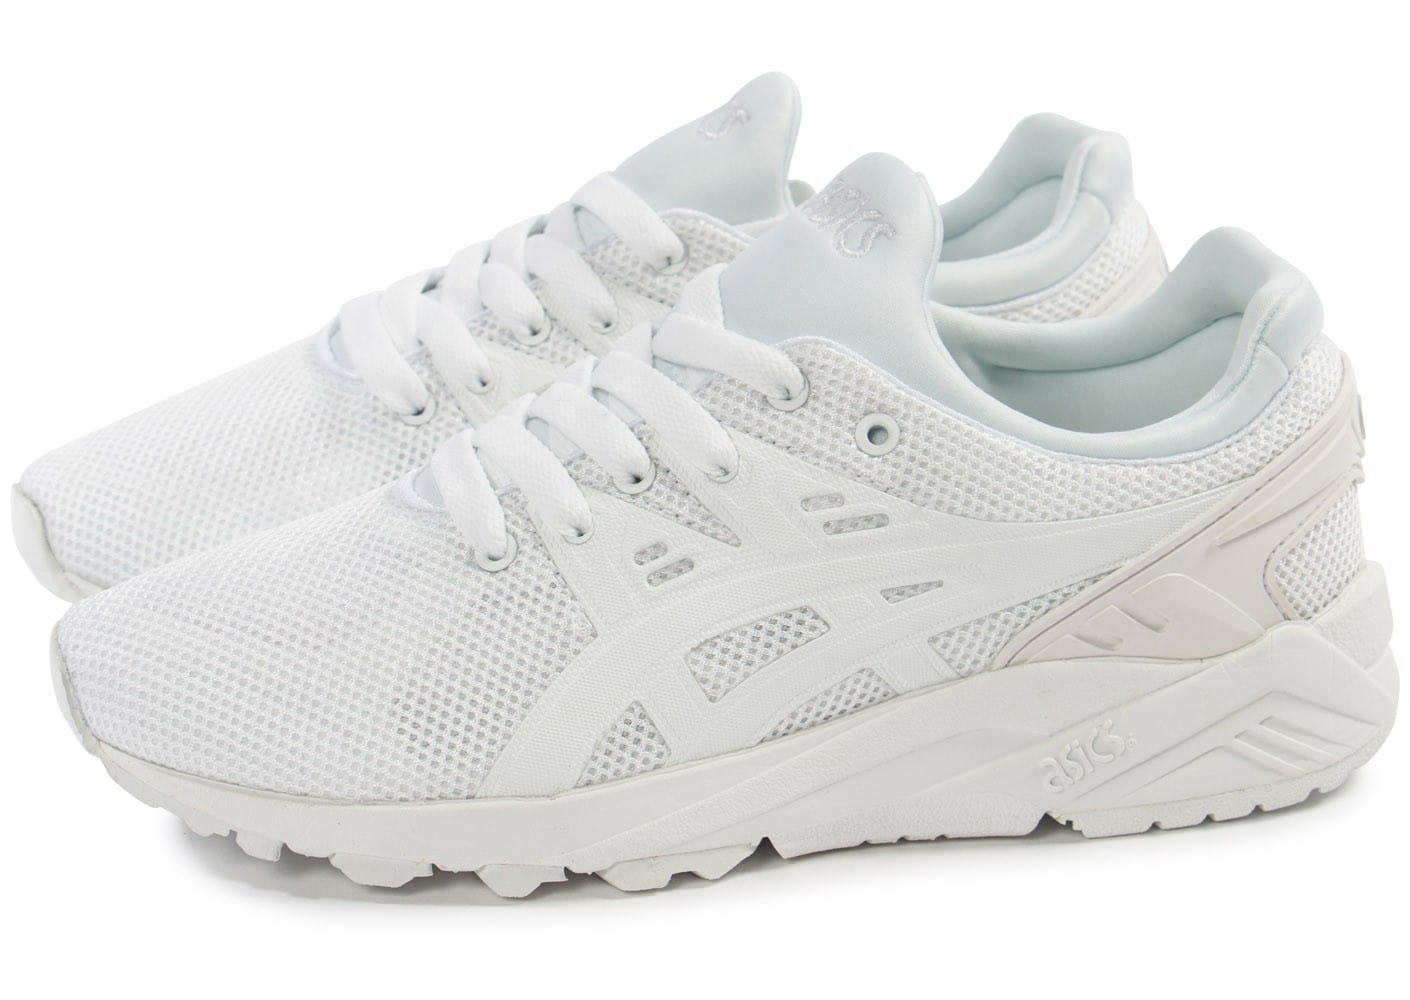 Chaussures Asics Gel blanches femme HAp0iZjghe